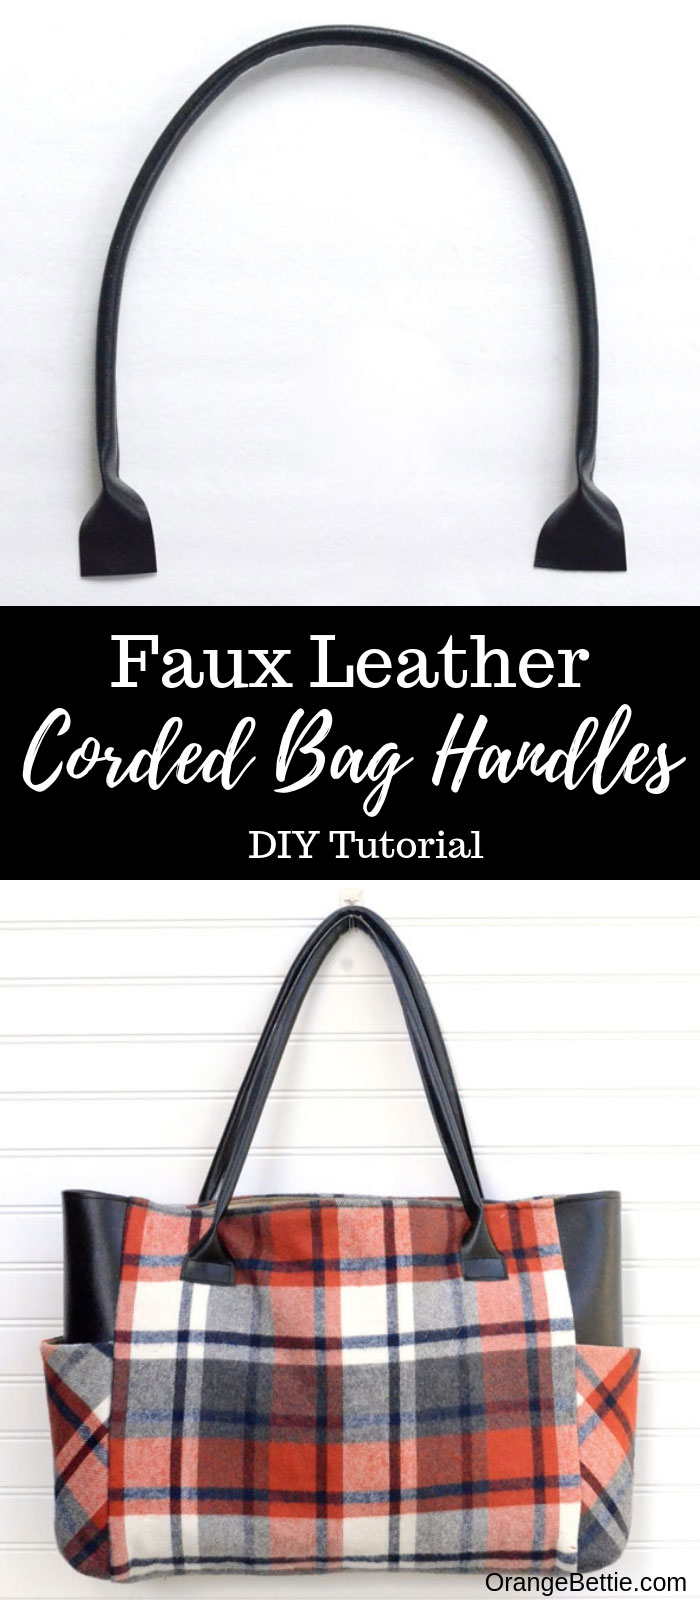 Faux Leather Corded Bag Handles - DIY Tutorial